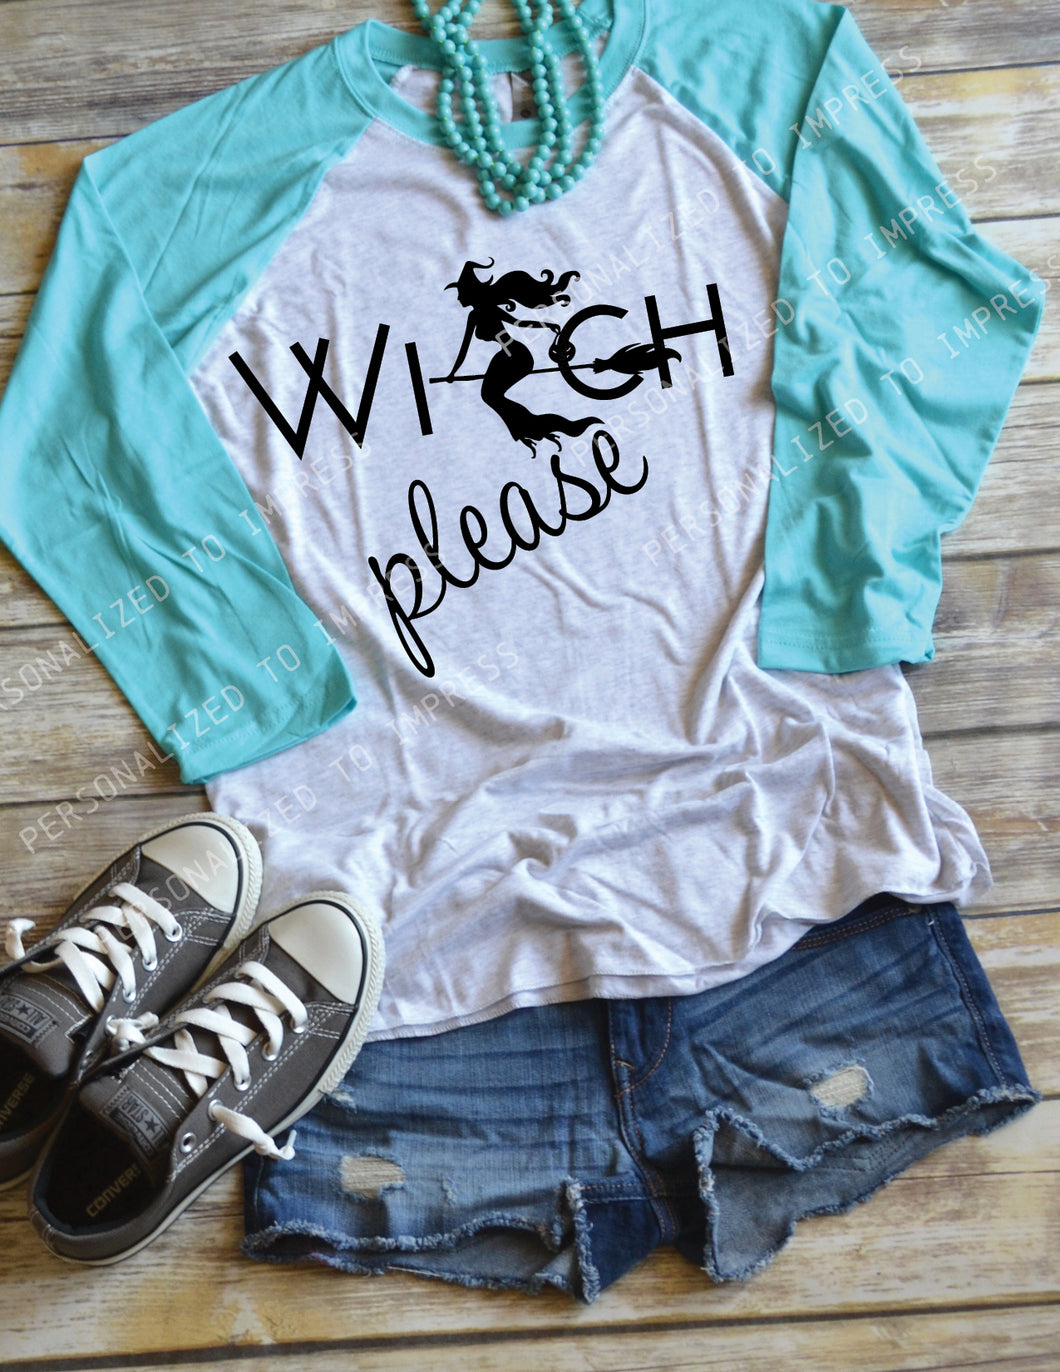 Halloween 'Witch Please' Design on baseball style shirt